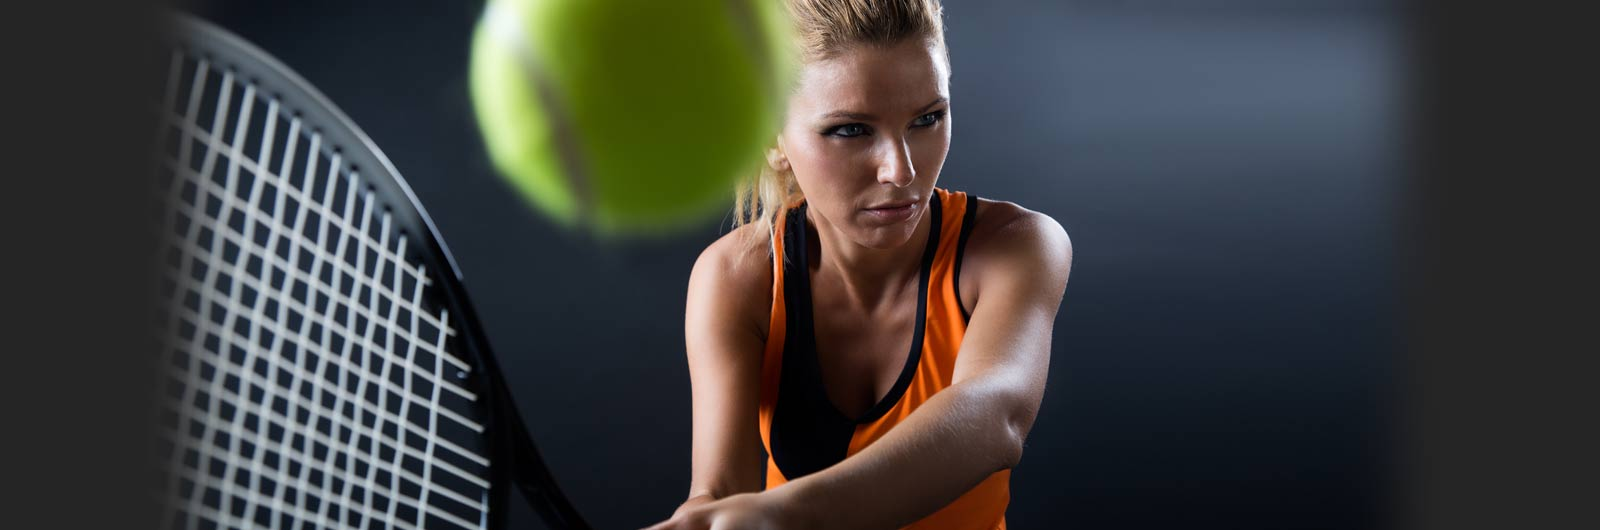 woman hitting tennis ball